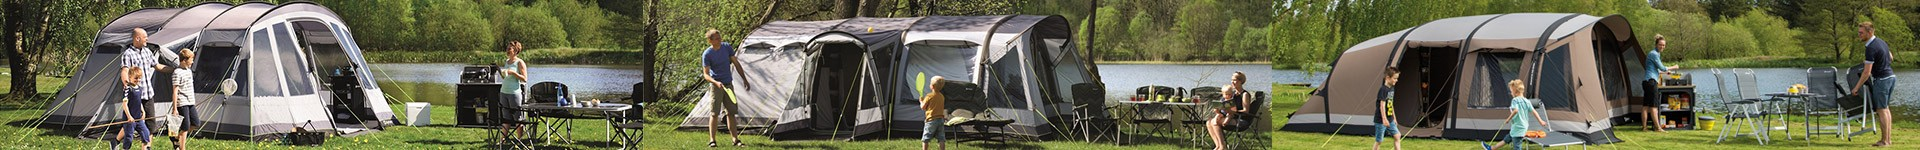 Outwell - Telte til familiens campingferie